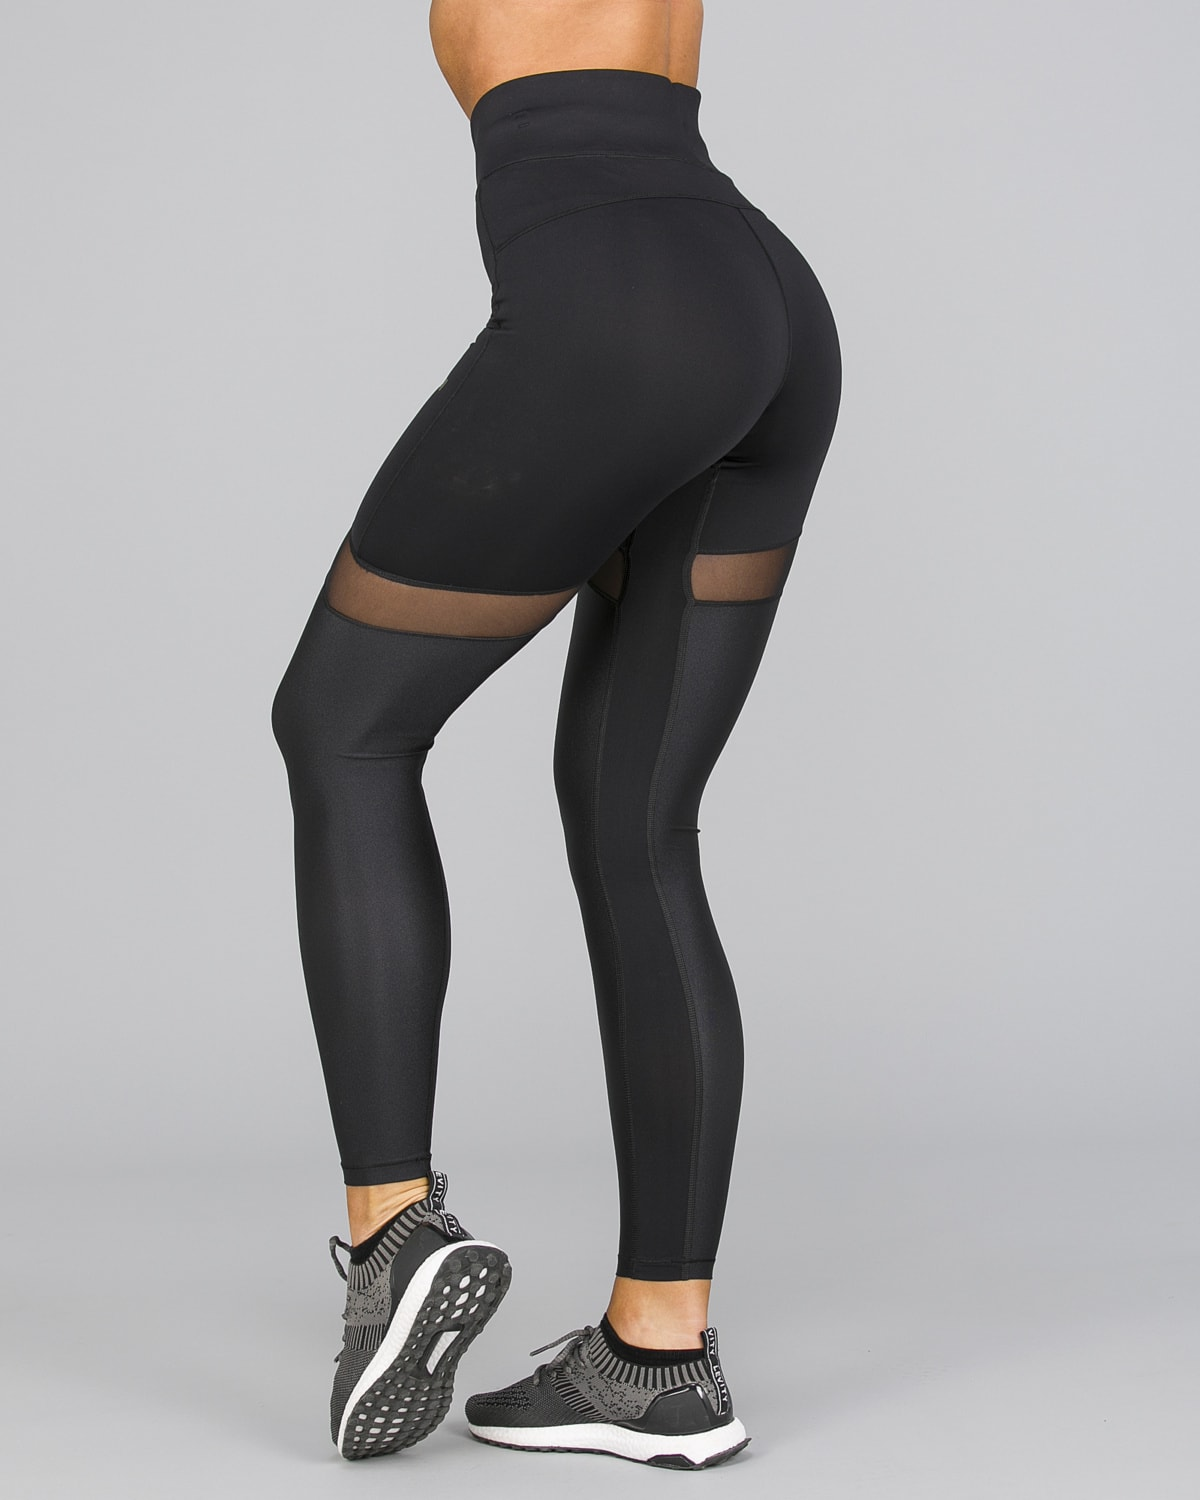 Casall Golden Lux 7:8 Tights7